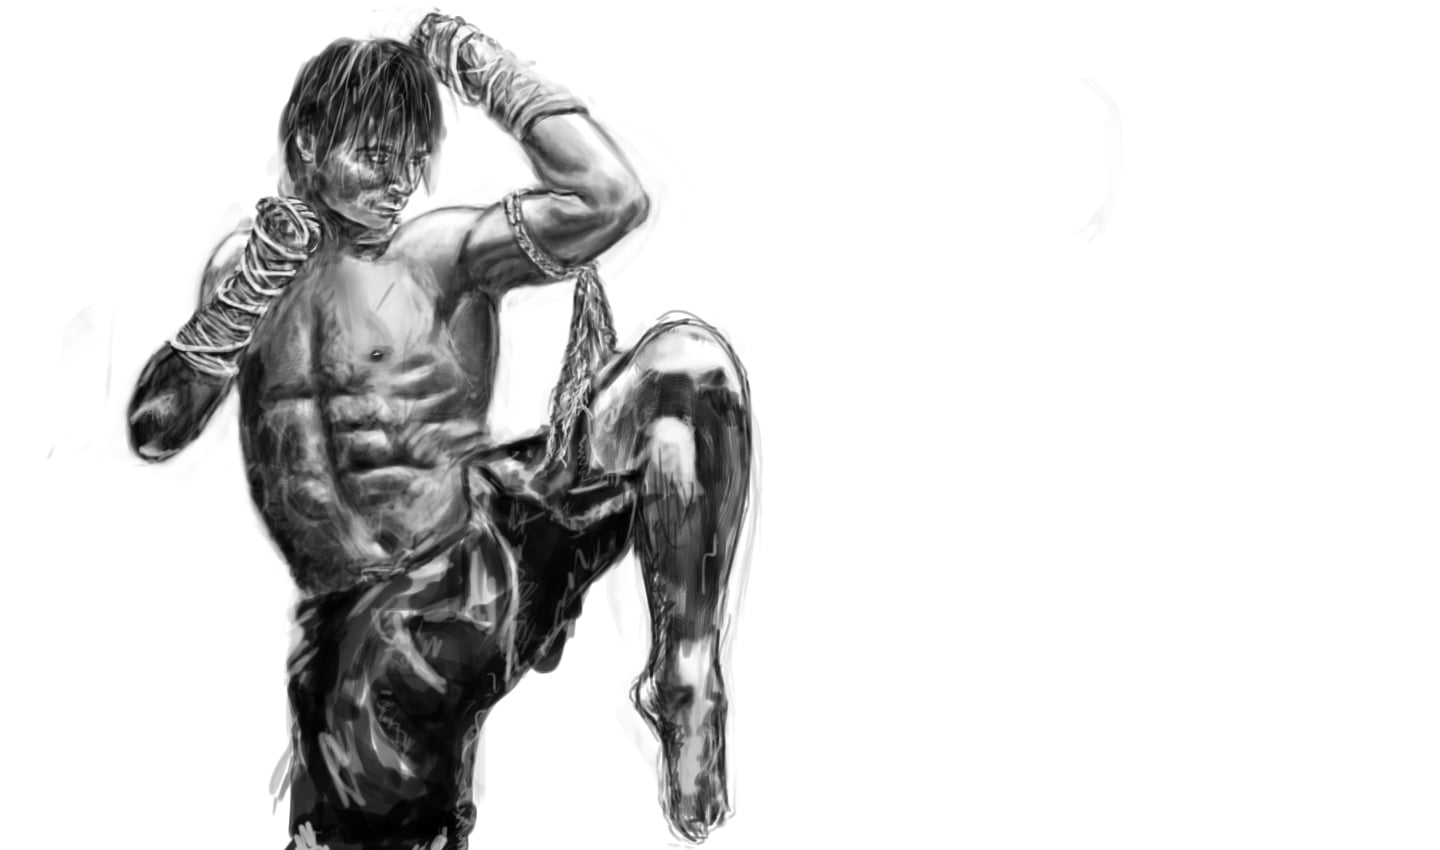 Tony Jaa draw wallpaper 1080p